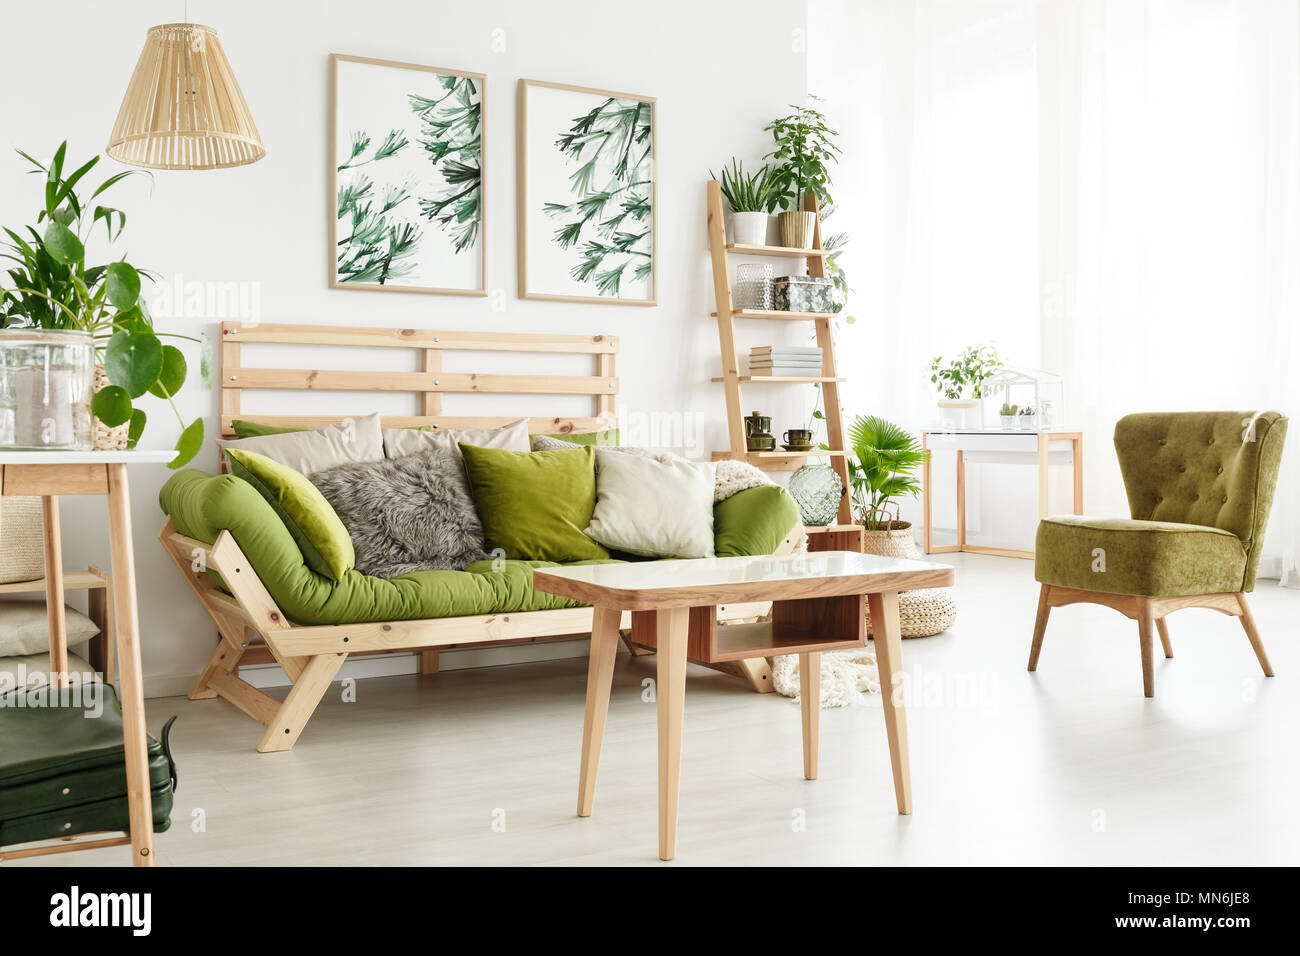 Wooden Table Near Green Armchair And Sofa In Natural Living Room